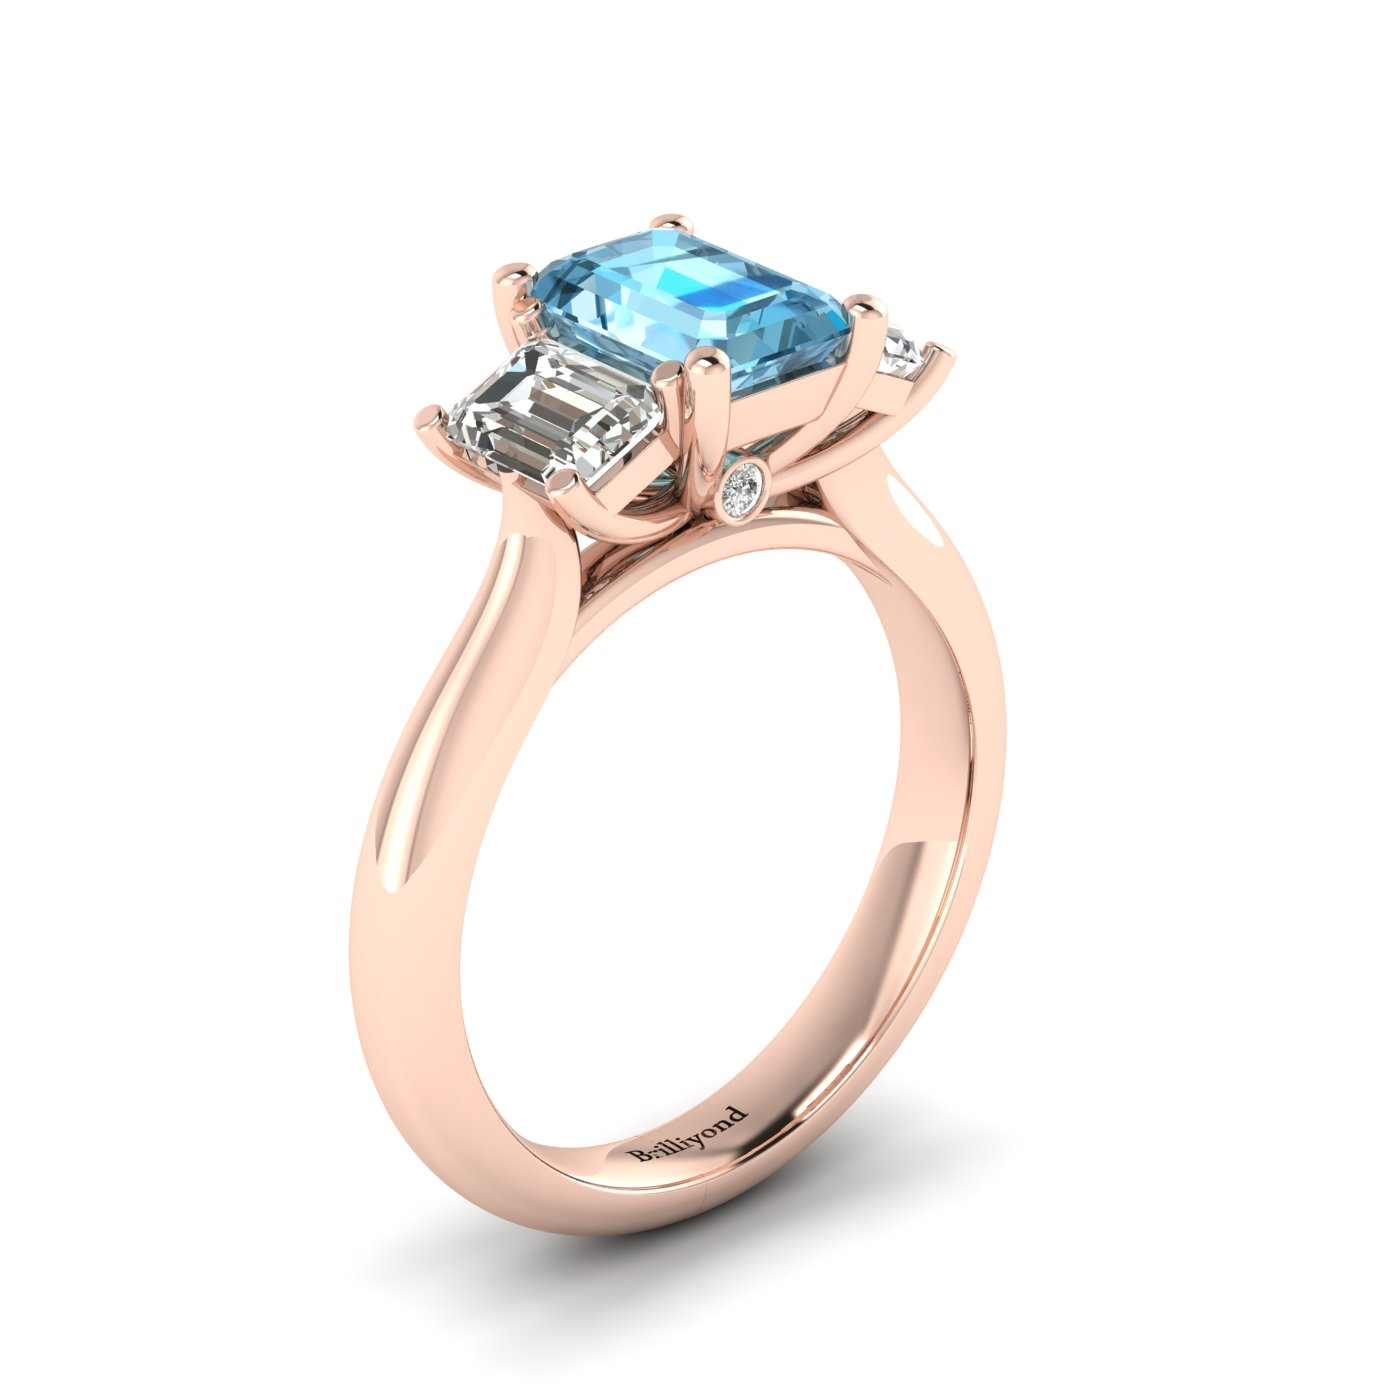 Aquamarine Rose Gold Emerald Cut Engagement Ring Blanche_image2